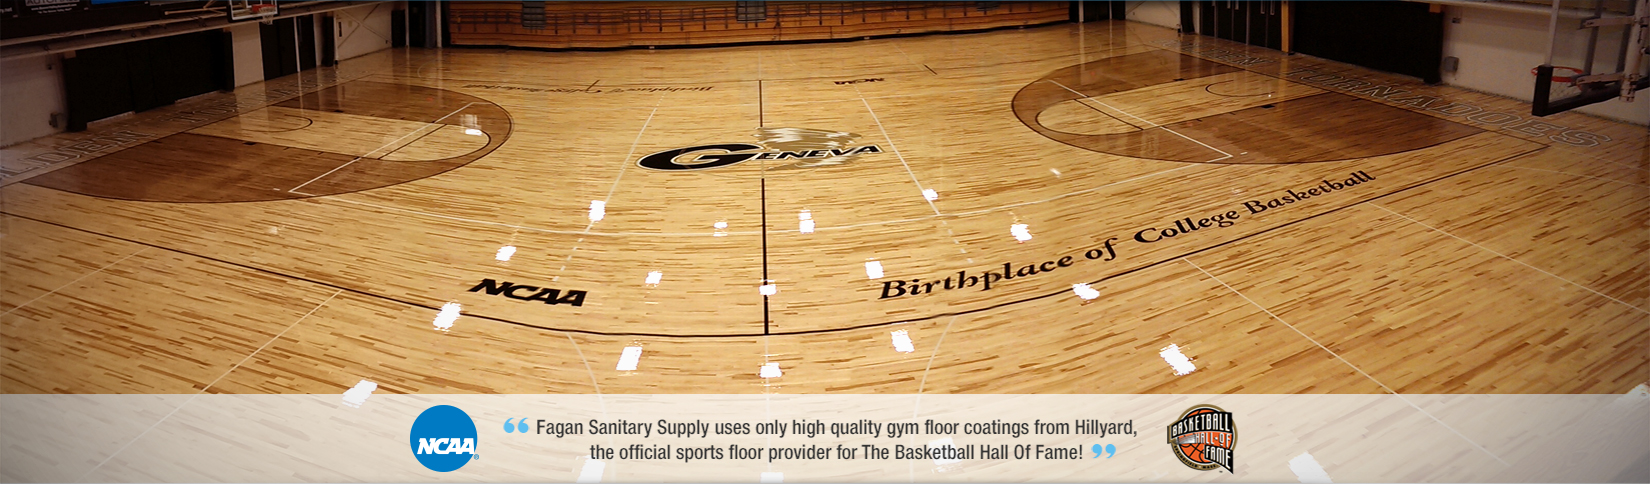 Fagan Sanitary Supply uses only high quality gym floor coatings from Hillyard.